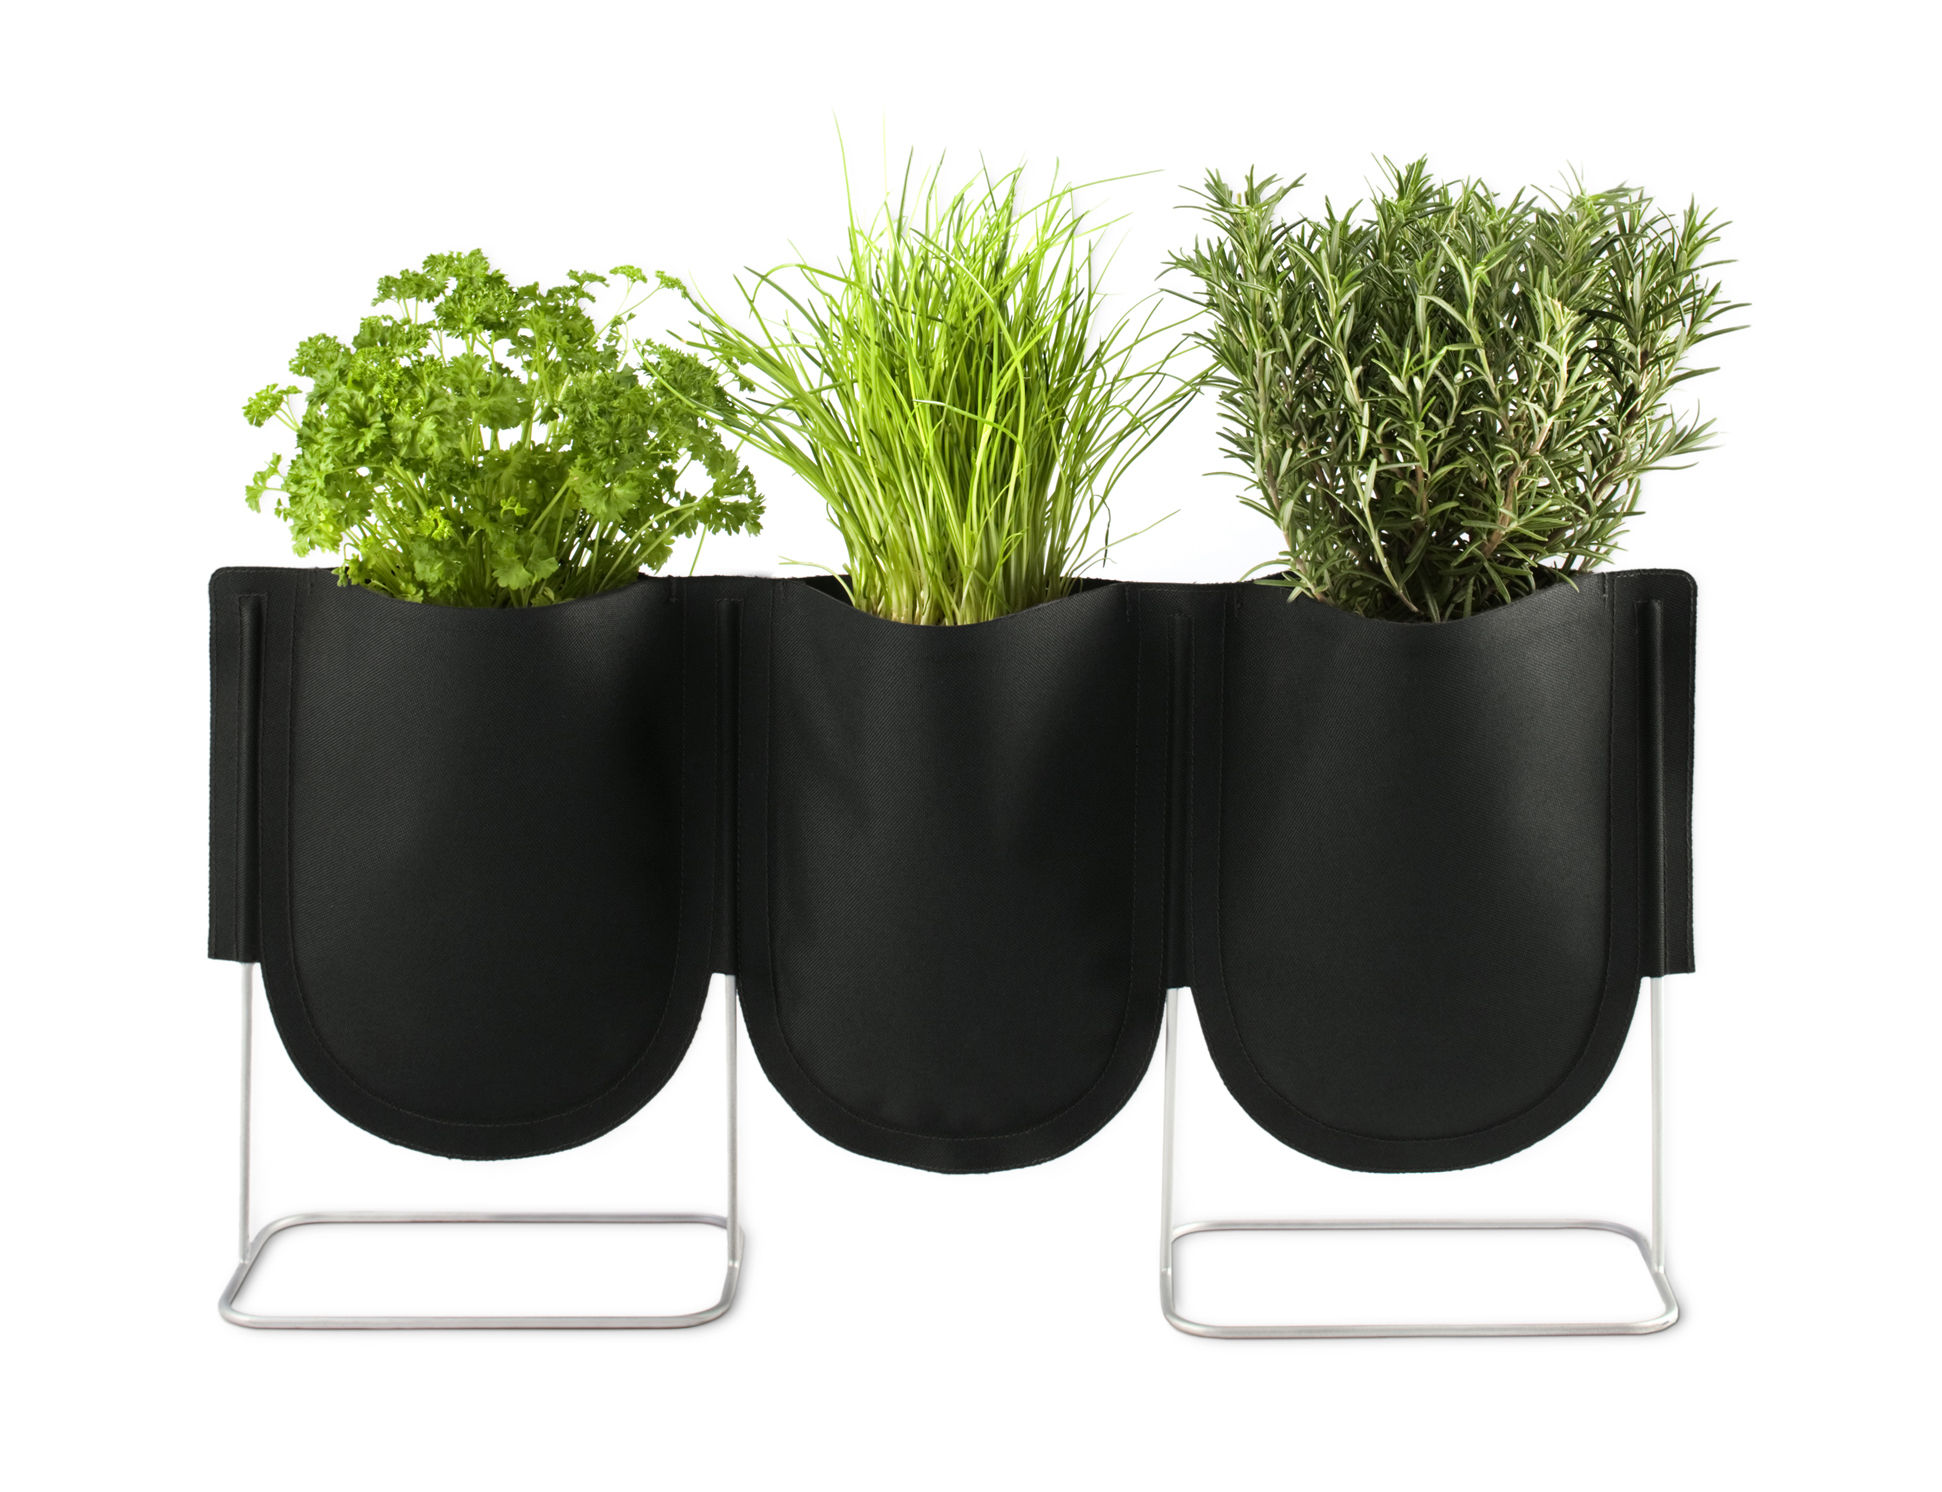 Outdoor - Pots & Plants - Urban Garden Bag Flowerpot - Set of 3 Plant bags by Authentics - Set of 3 Plant Bags S - 1 litre / Black - Galvanized steel, Polyester fabric